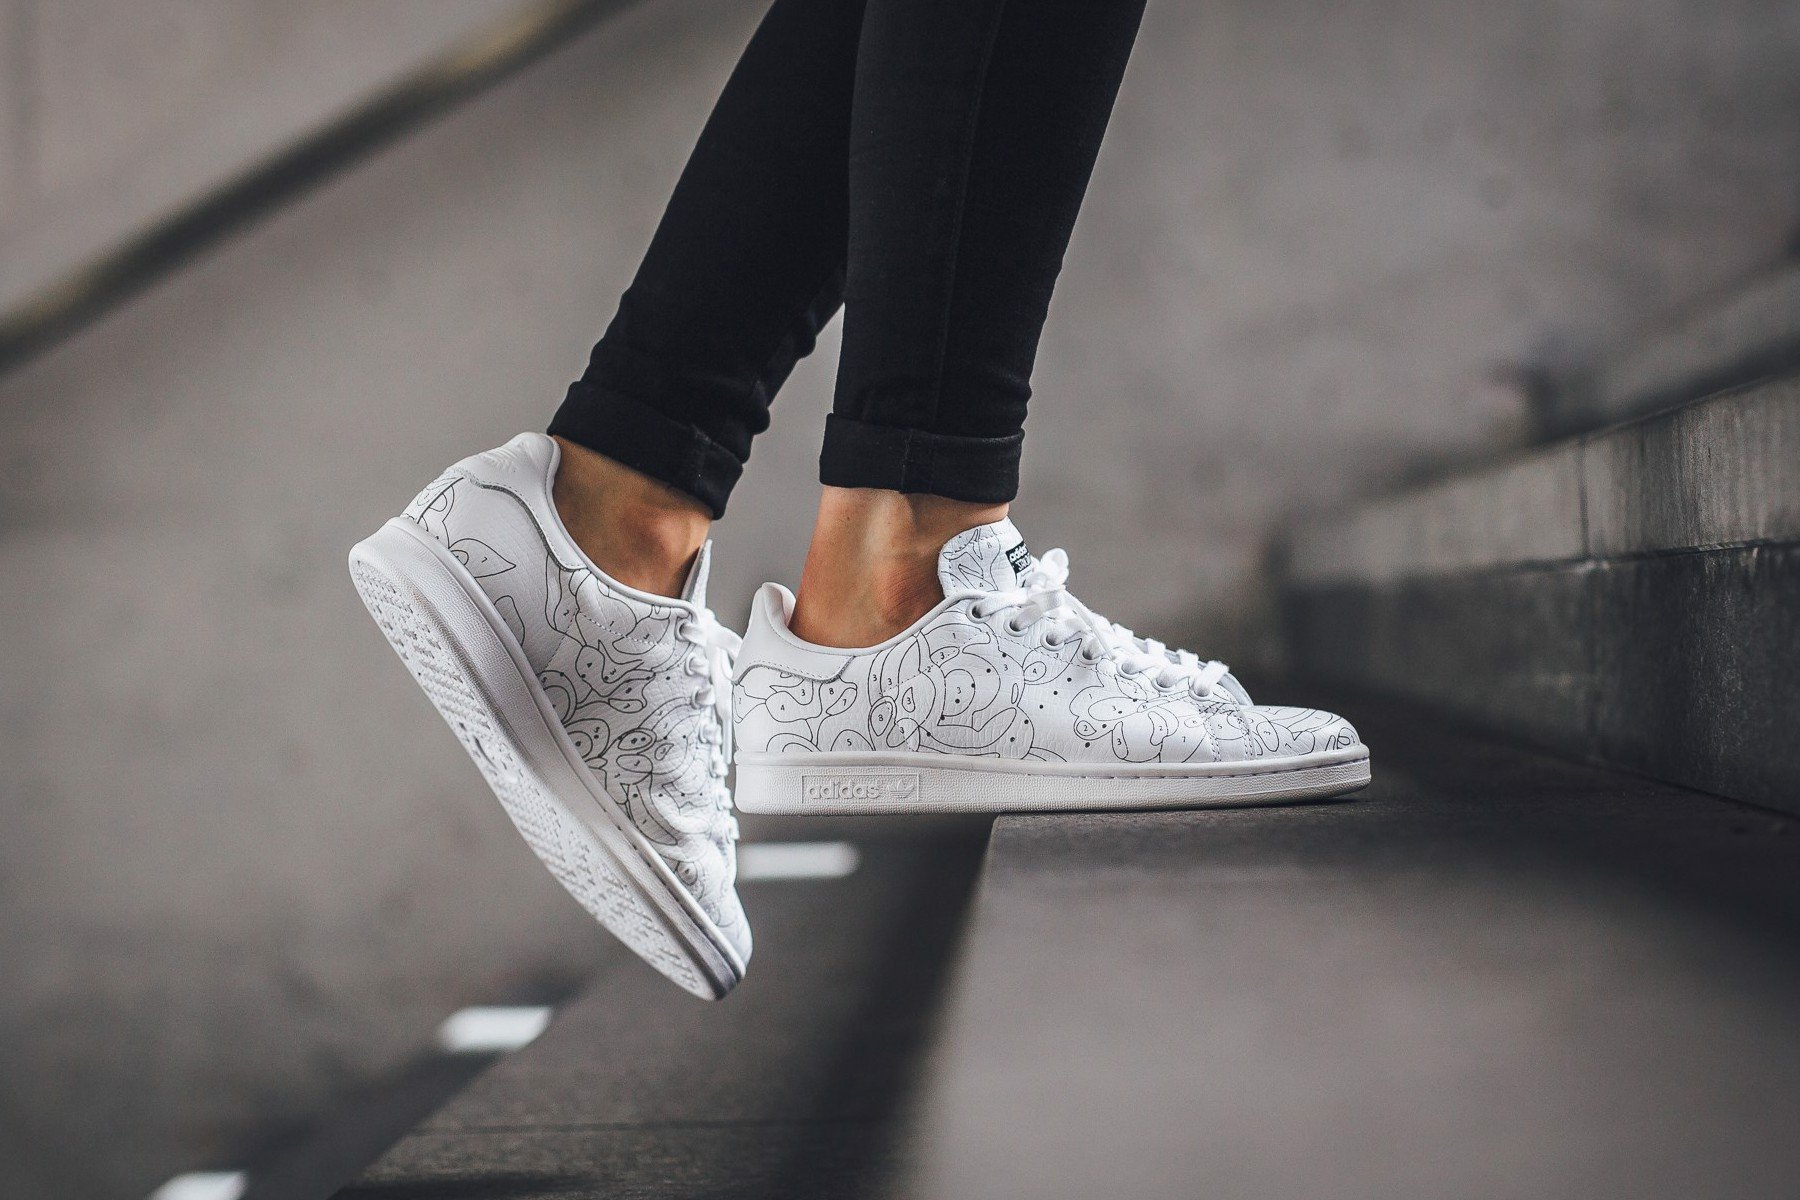 Adidas Stan Smith x Rita Ora S80292